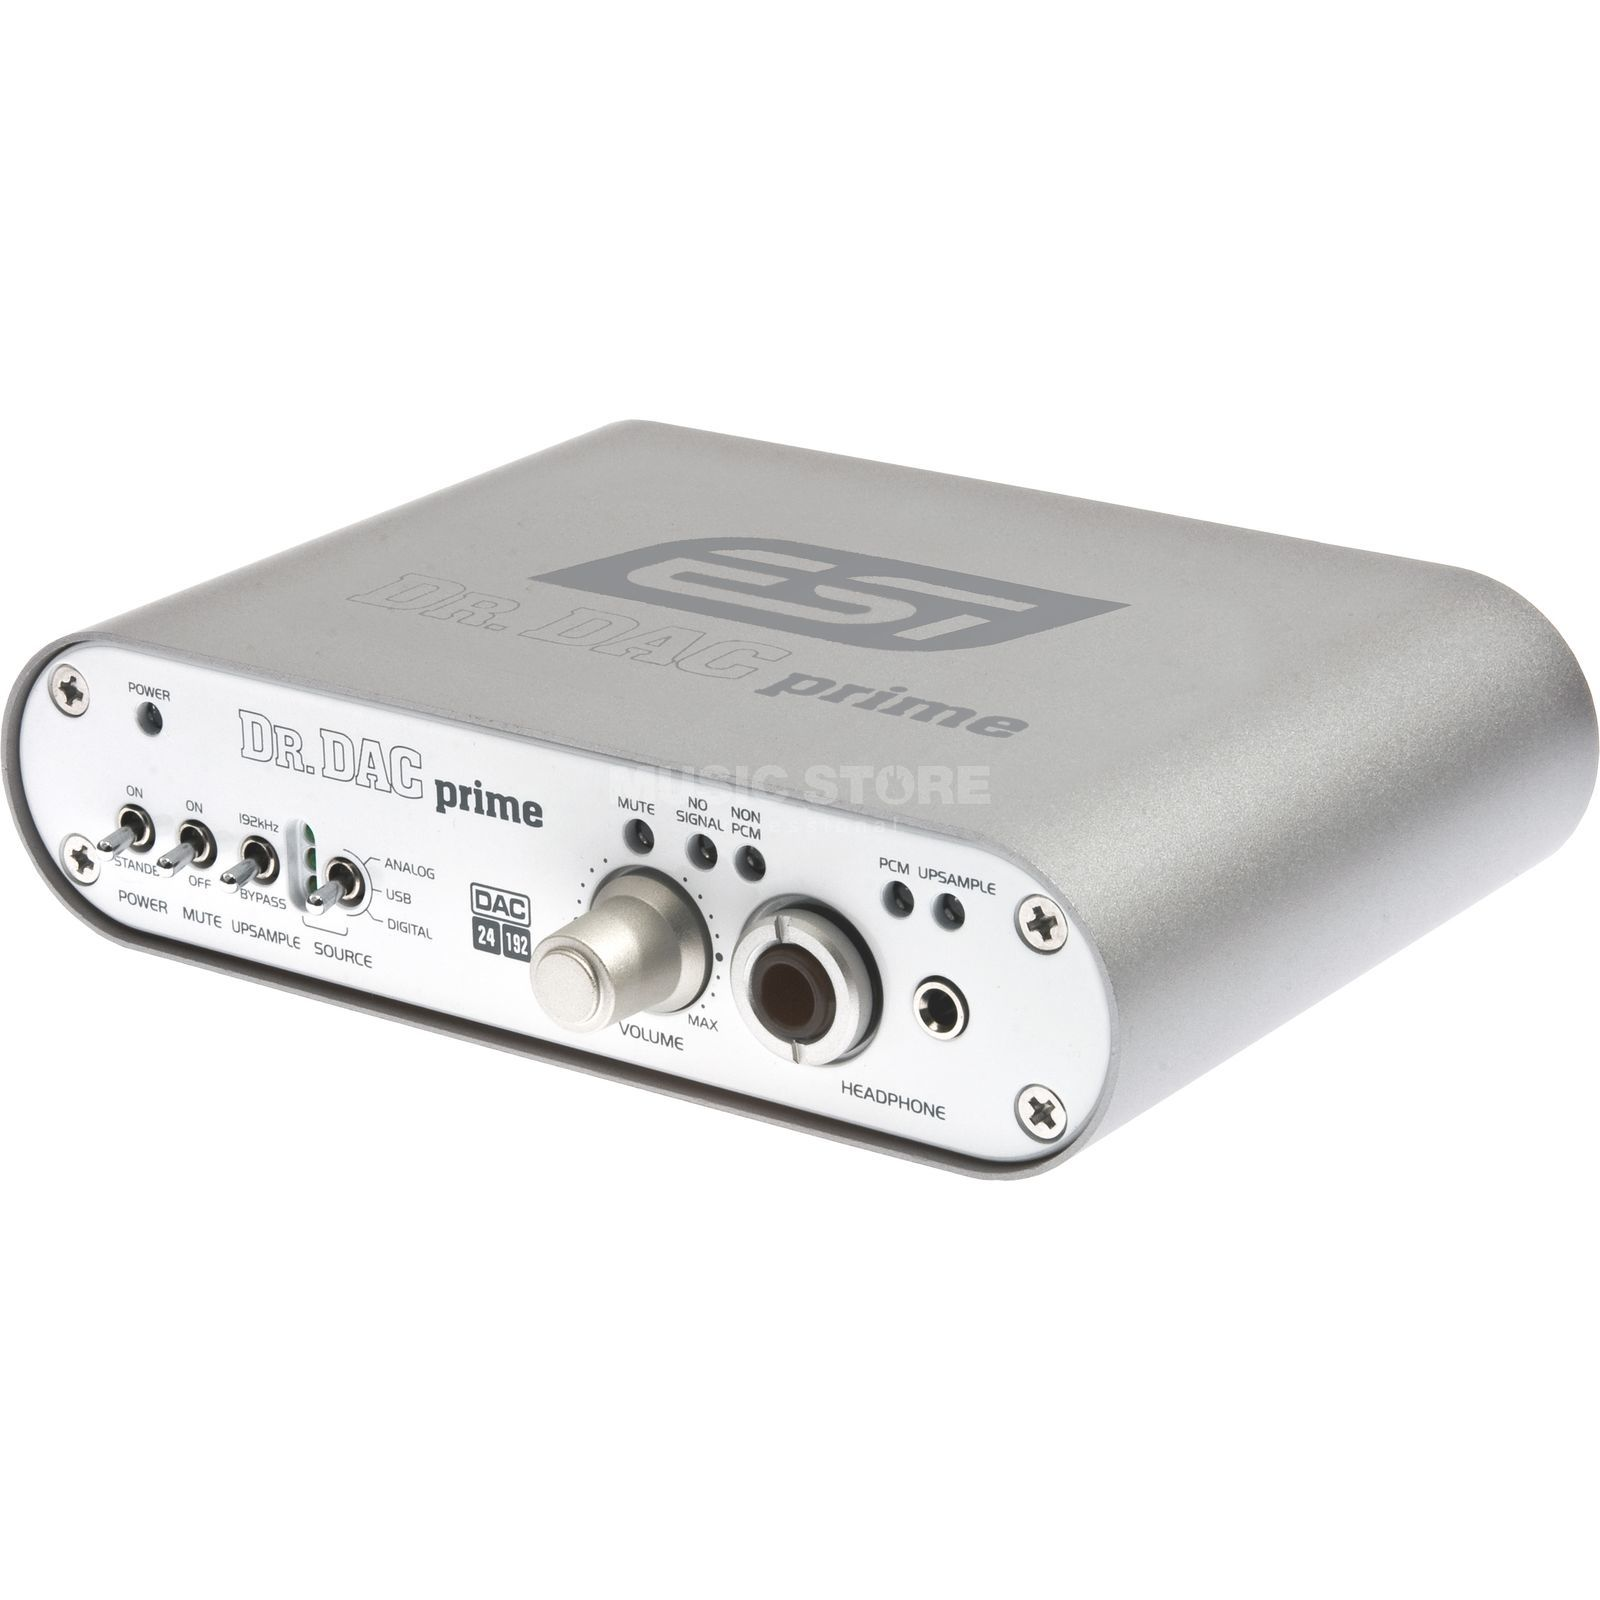 ESI Dr. DAC prime AD/DA Converter with USB Interface Produktbillede